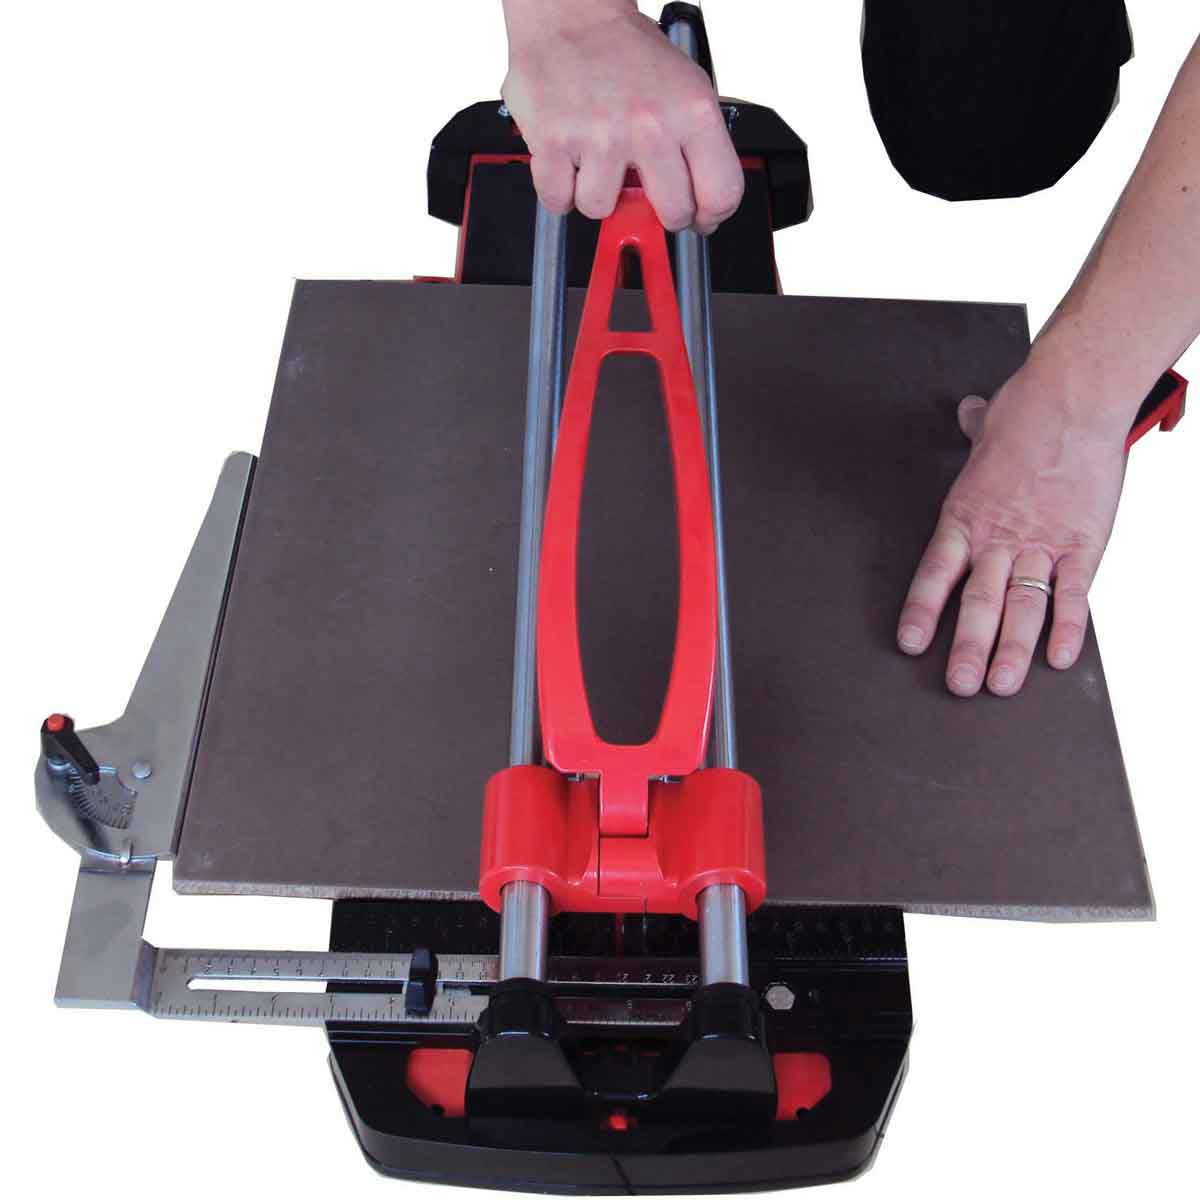 Wishbone tile Cutter breaking